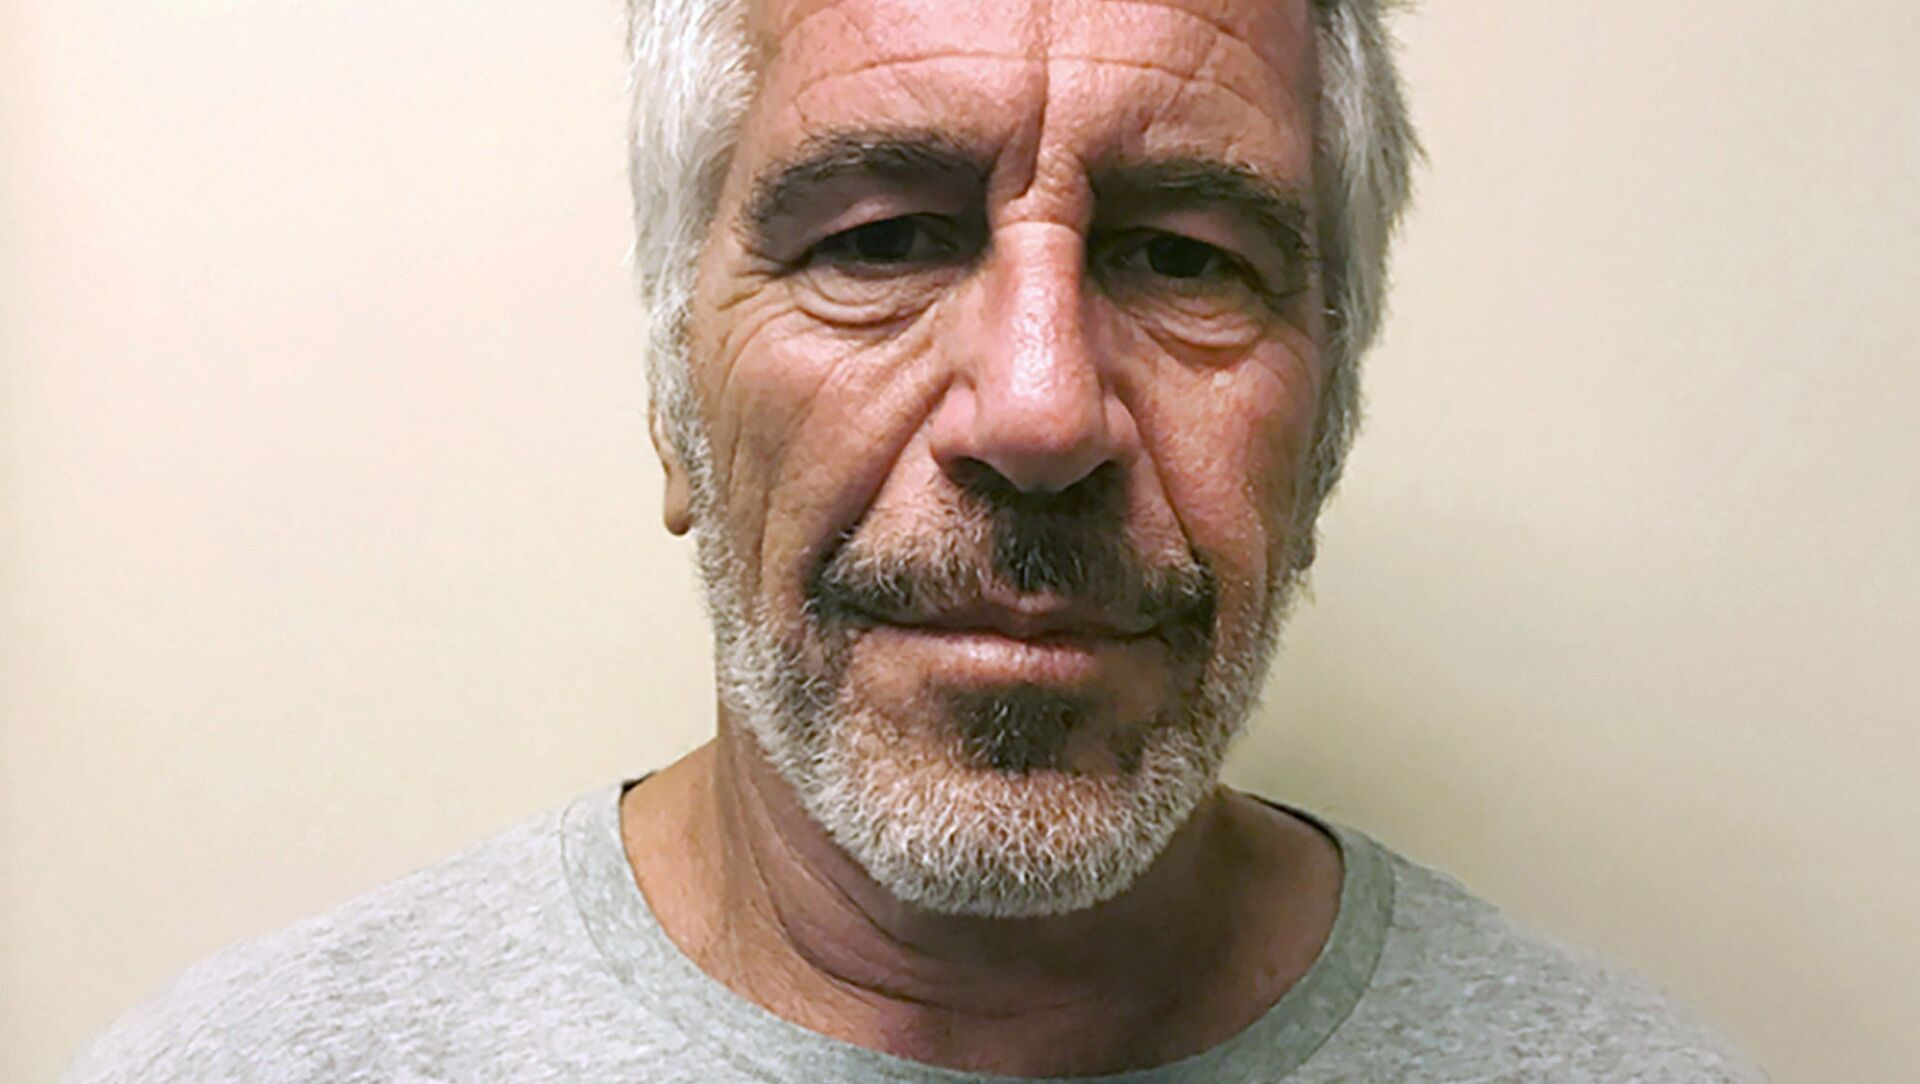 FILE - This March 28, 2017, file photo, provided by the New York State Sex Offender Registry, shows Jeffrey Epstein. British socialite Ghislaine Maxwell was arrested by the FBI on Thursday, July 2, 2020, on charges she helped procure underage sex partners for the financier - Sputnik International, 1920, 03.02.2021